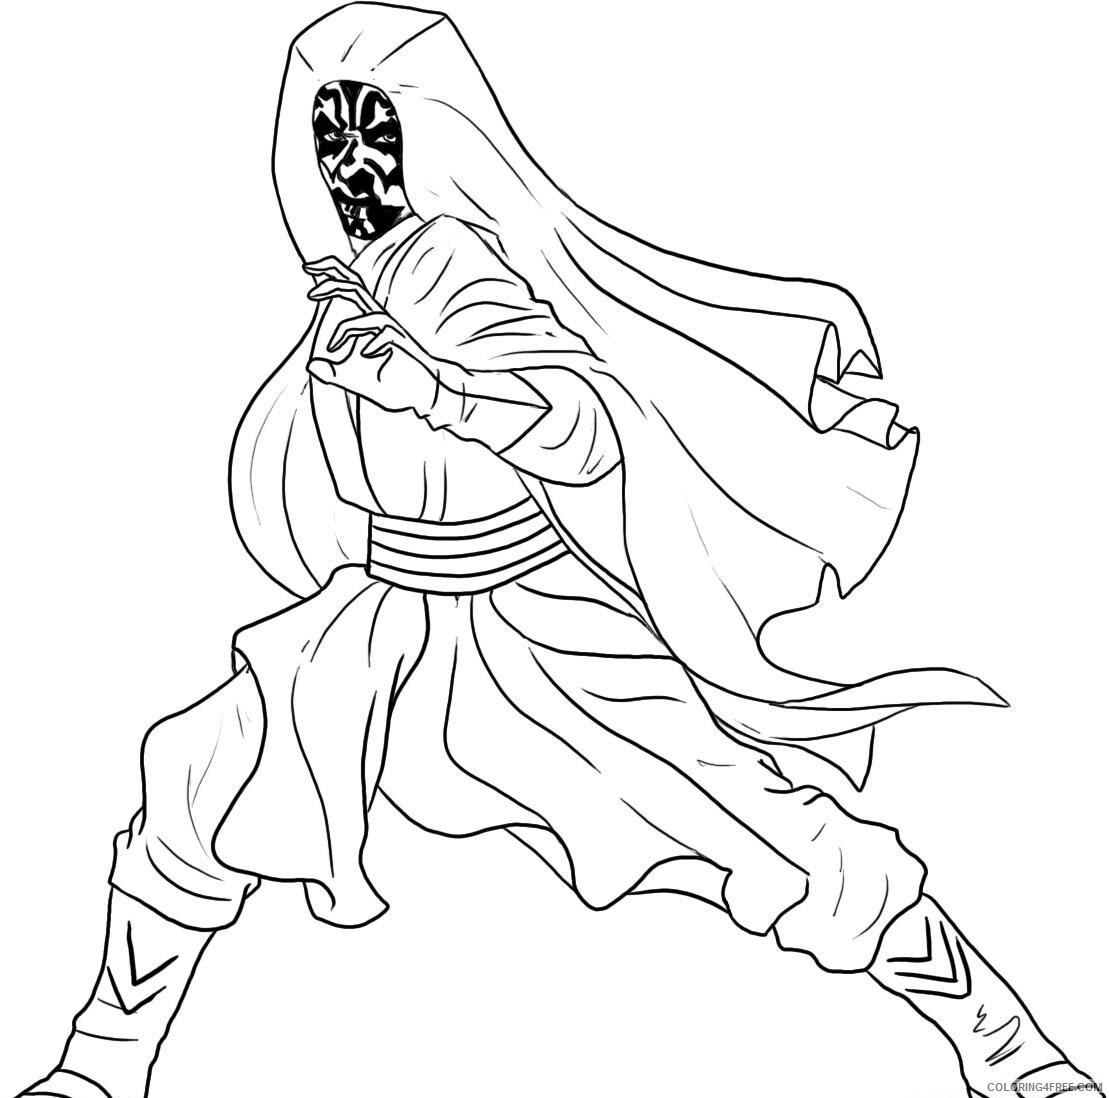 Star Wars Coloring Pages TV Film Star Wars Printable 2020 08031 Coloring4free